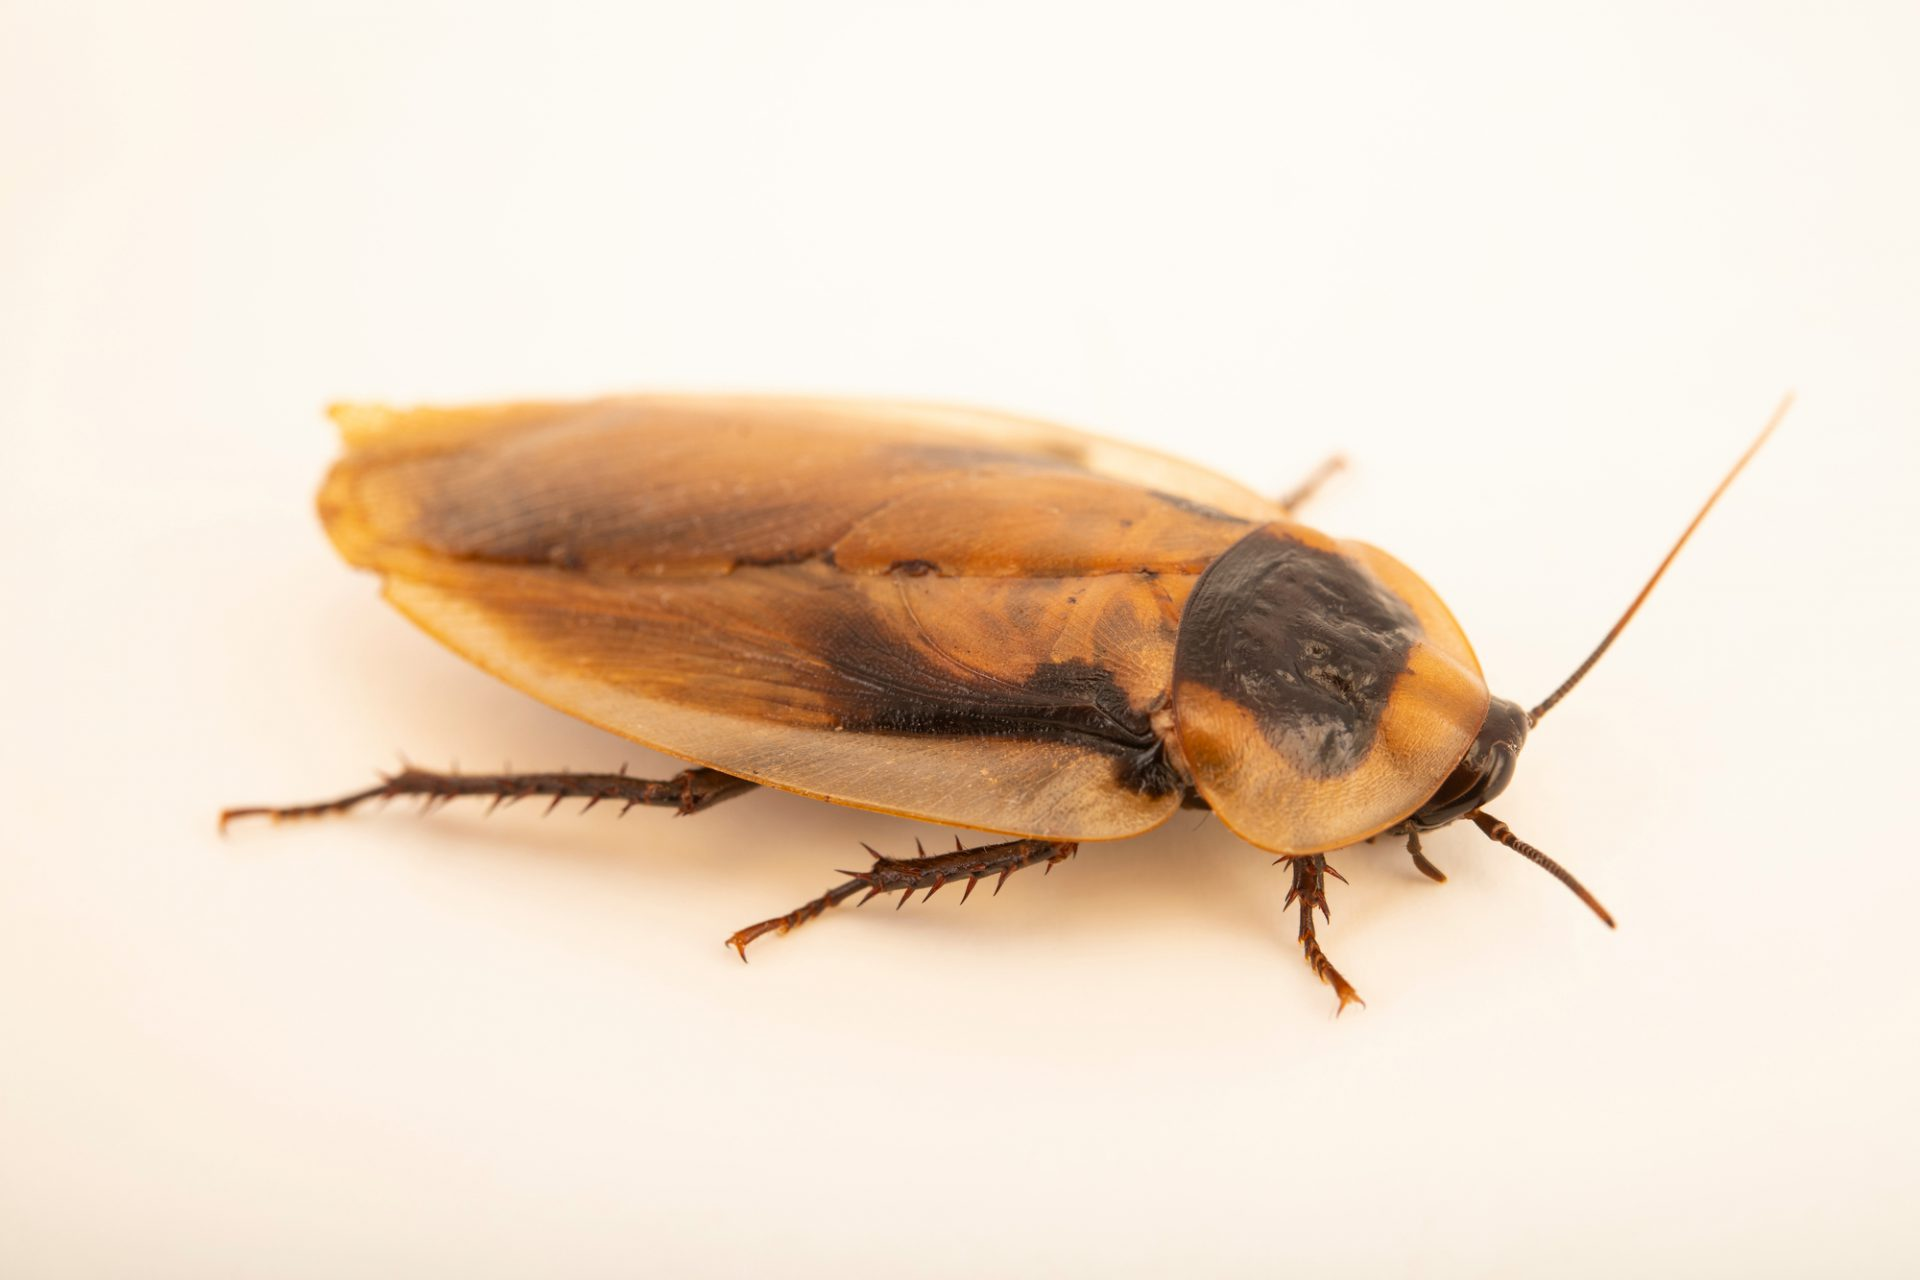 Photo: Death's head roach (Blaberus cranifer) at the Moscow Zoo.